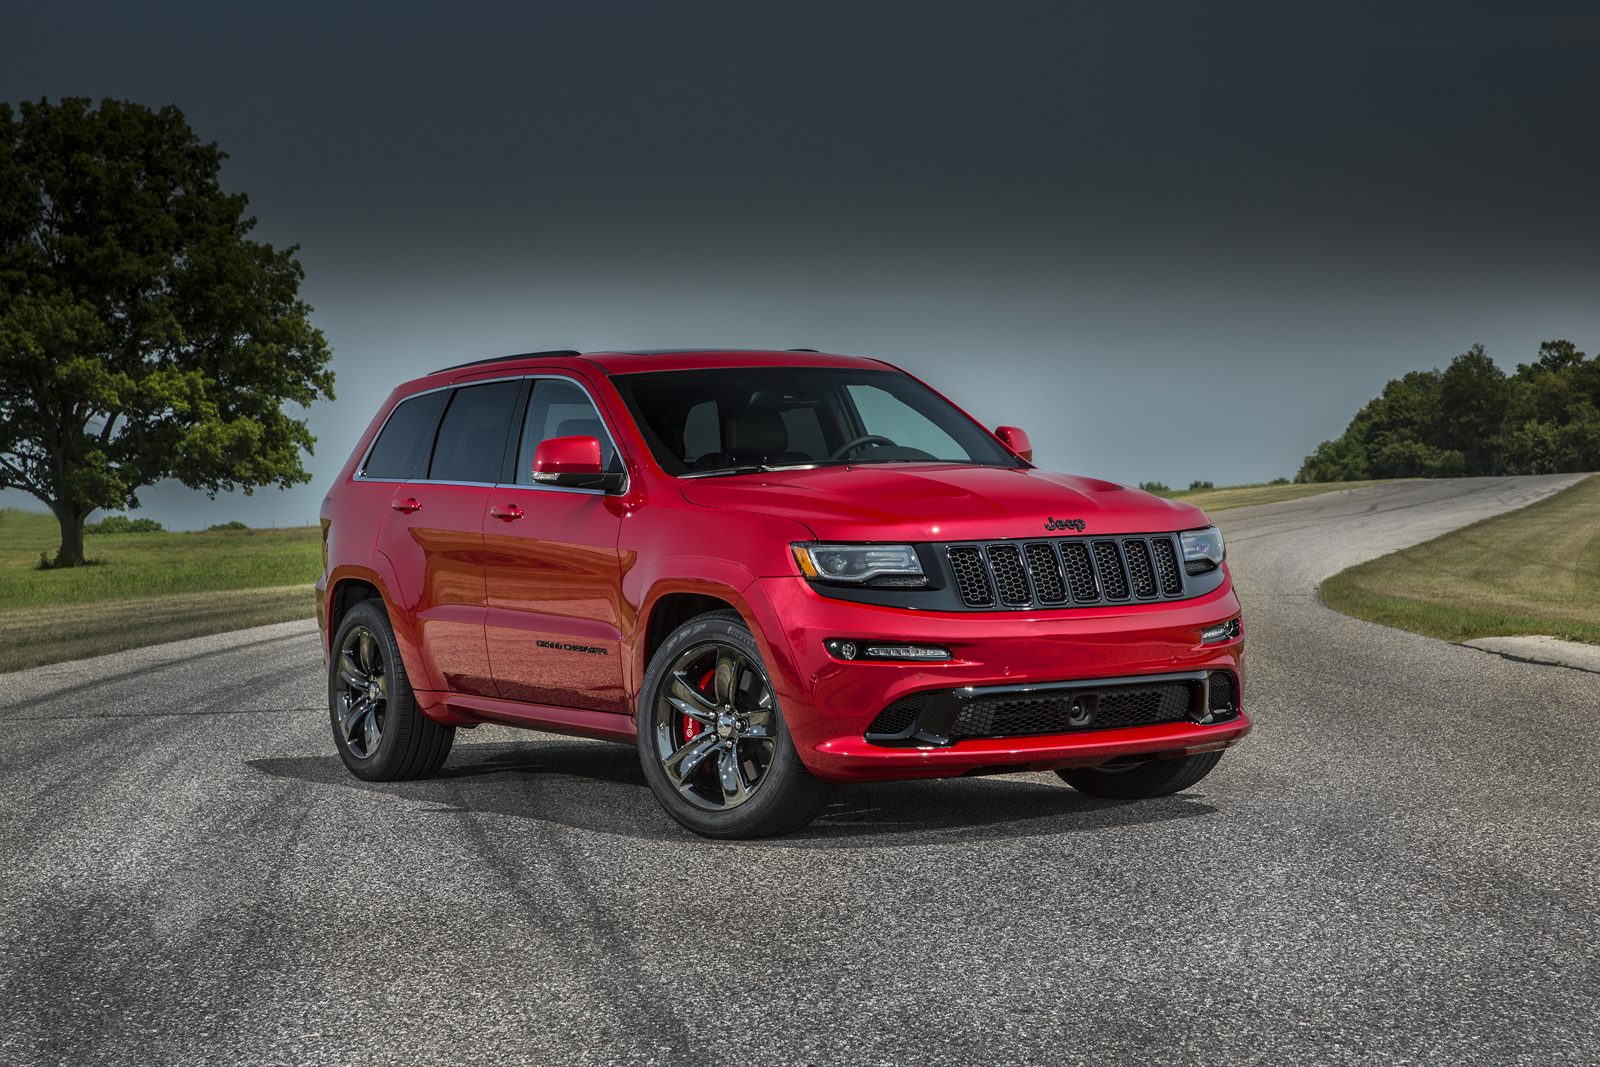 2015 Jeep Grand Cherokee SRT #9